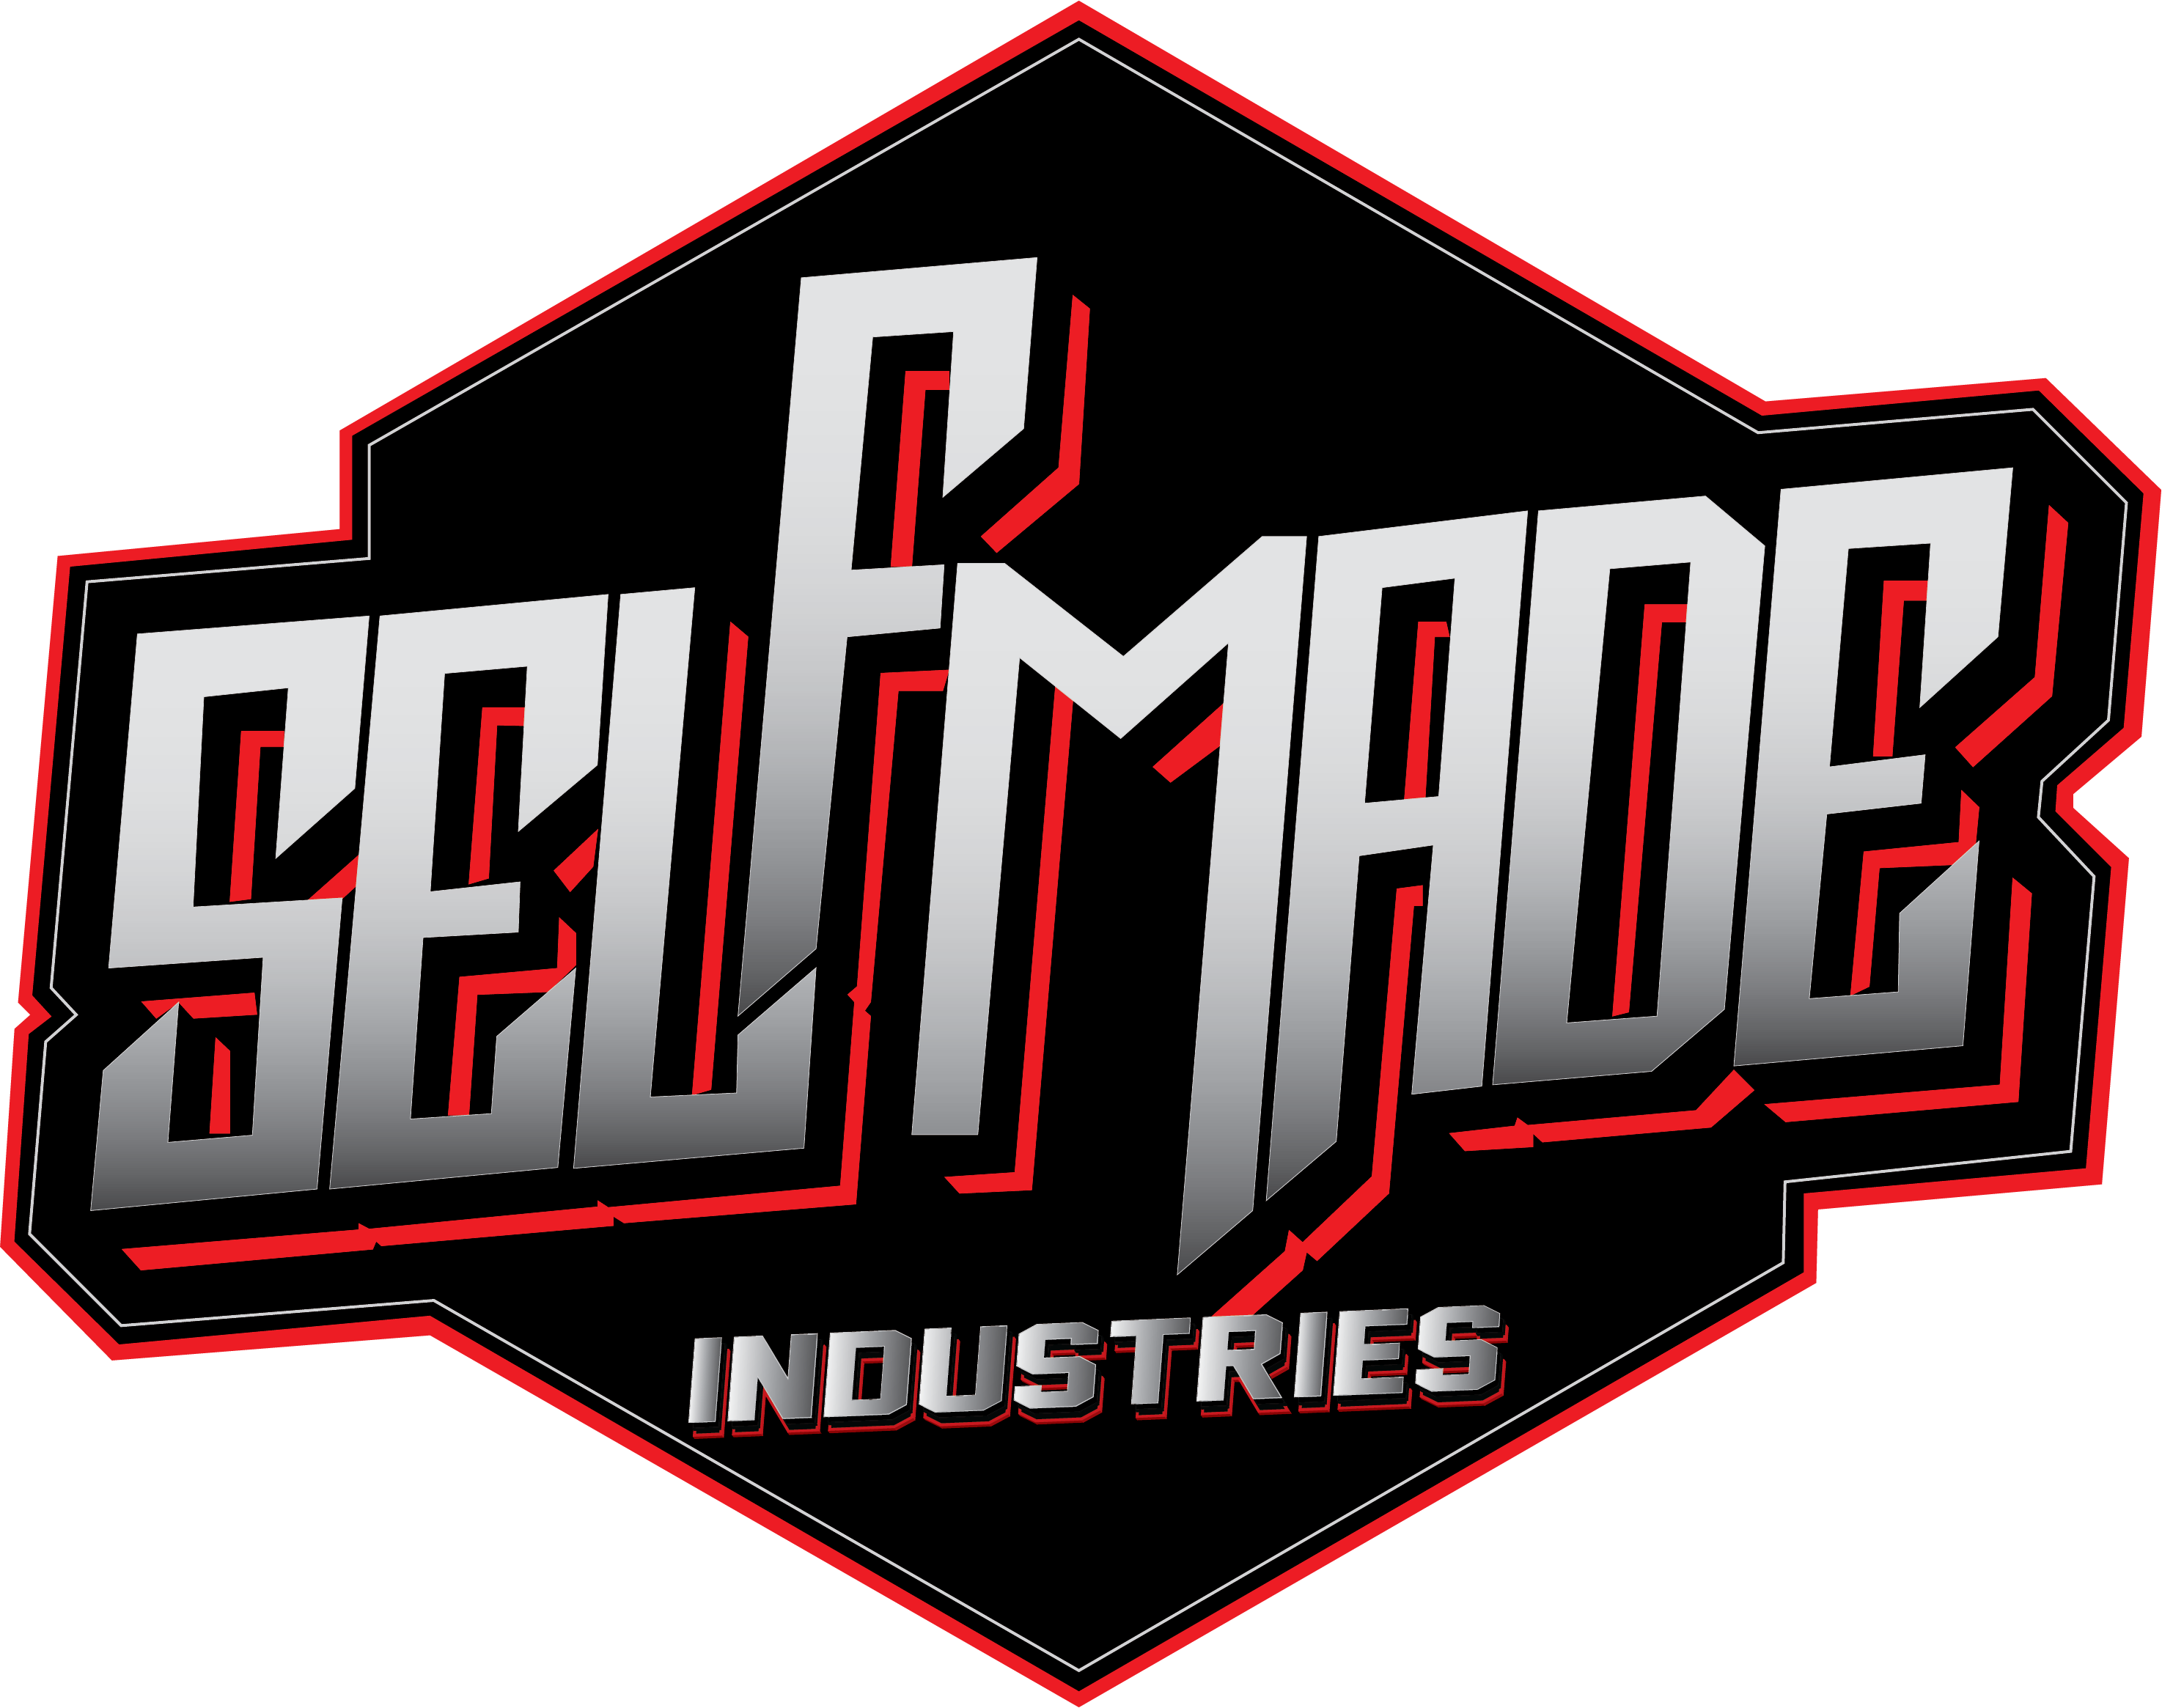 Self Made Industries